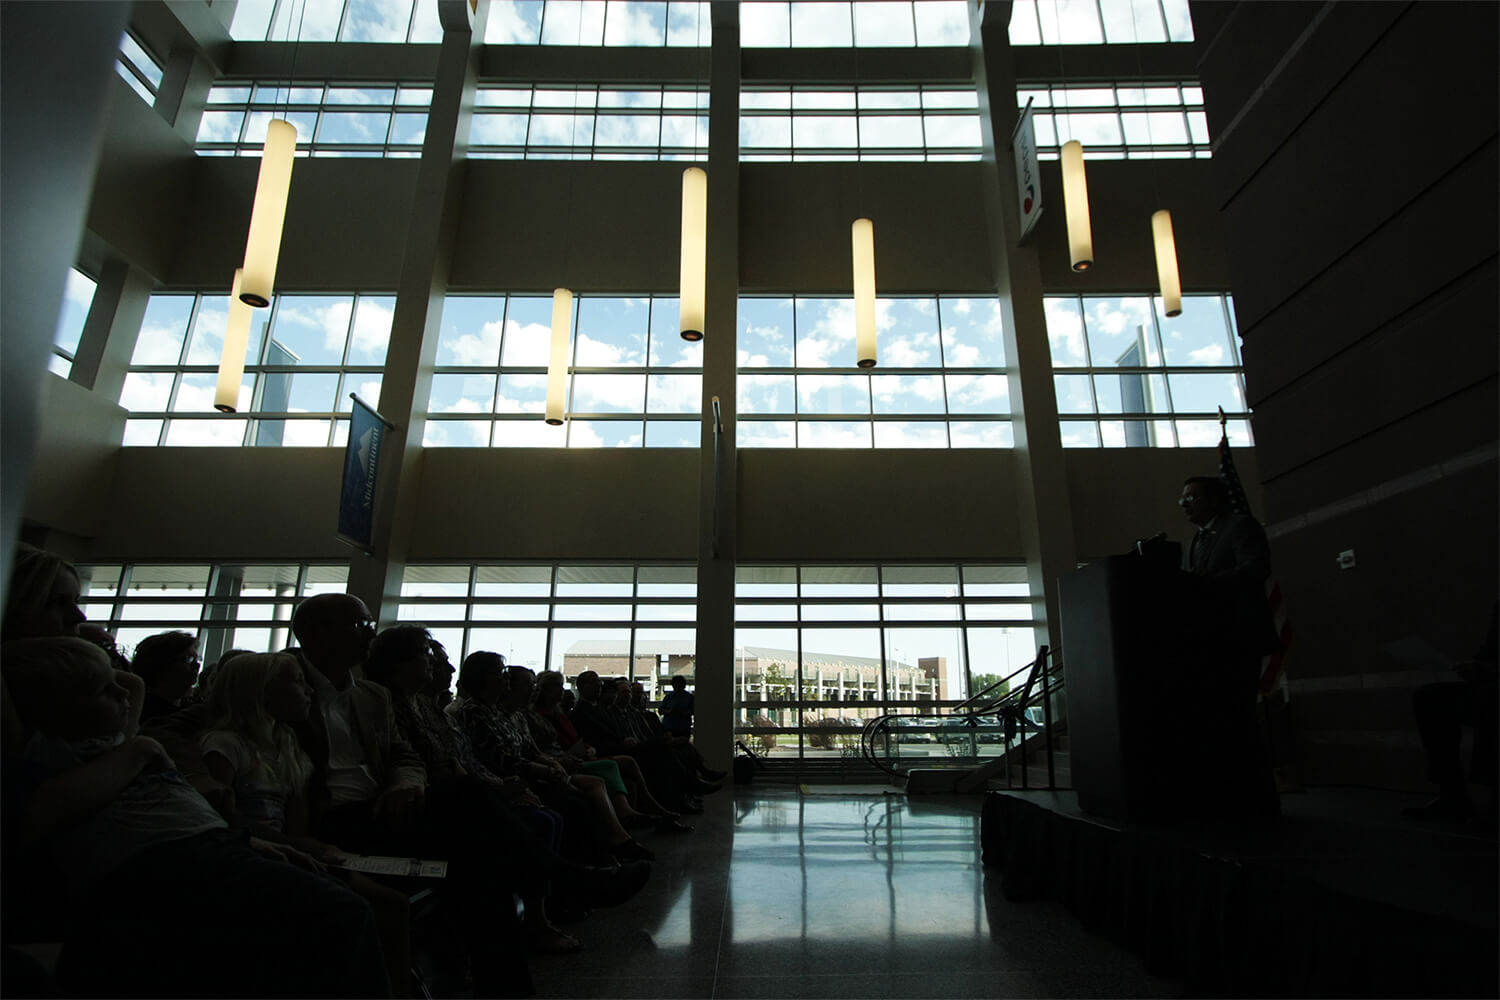 Denny Sanford Premier Center ribbon cutting–light in the window